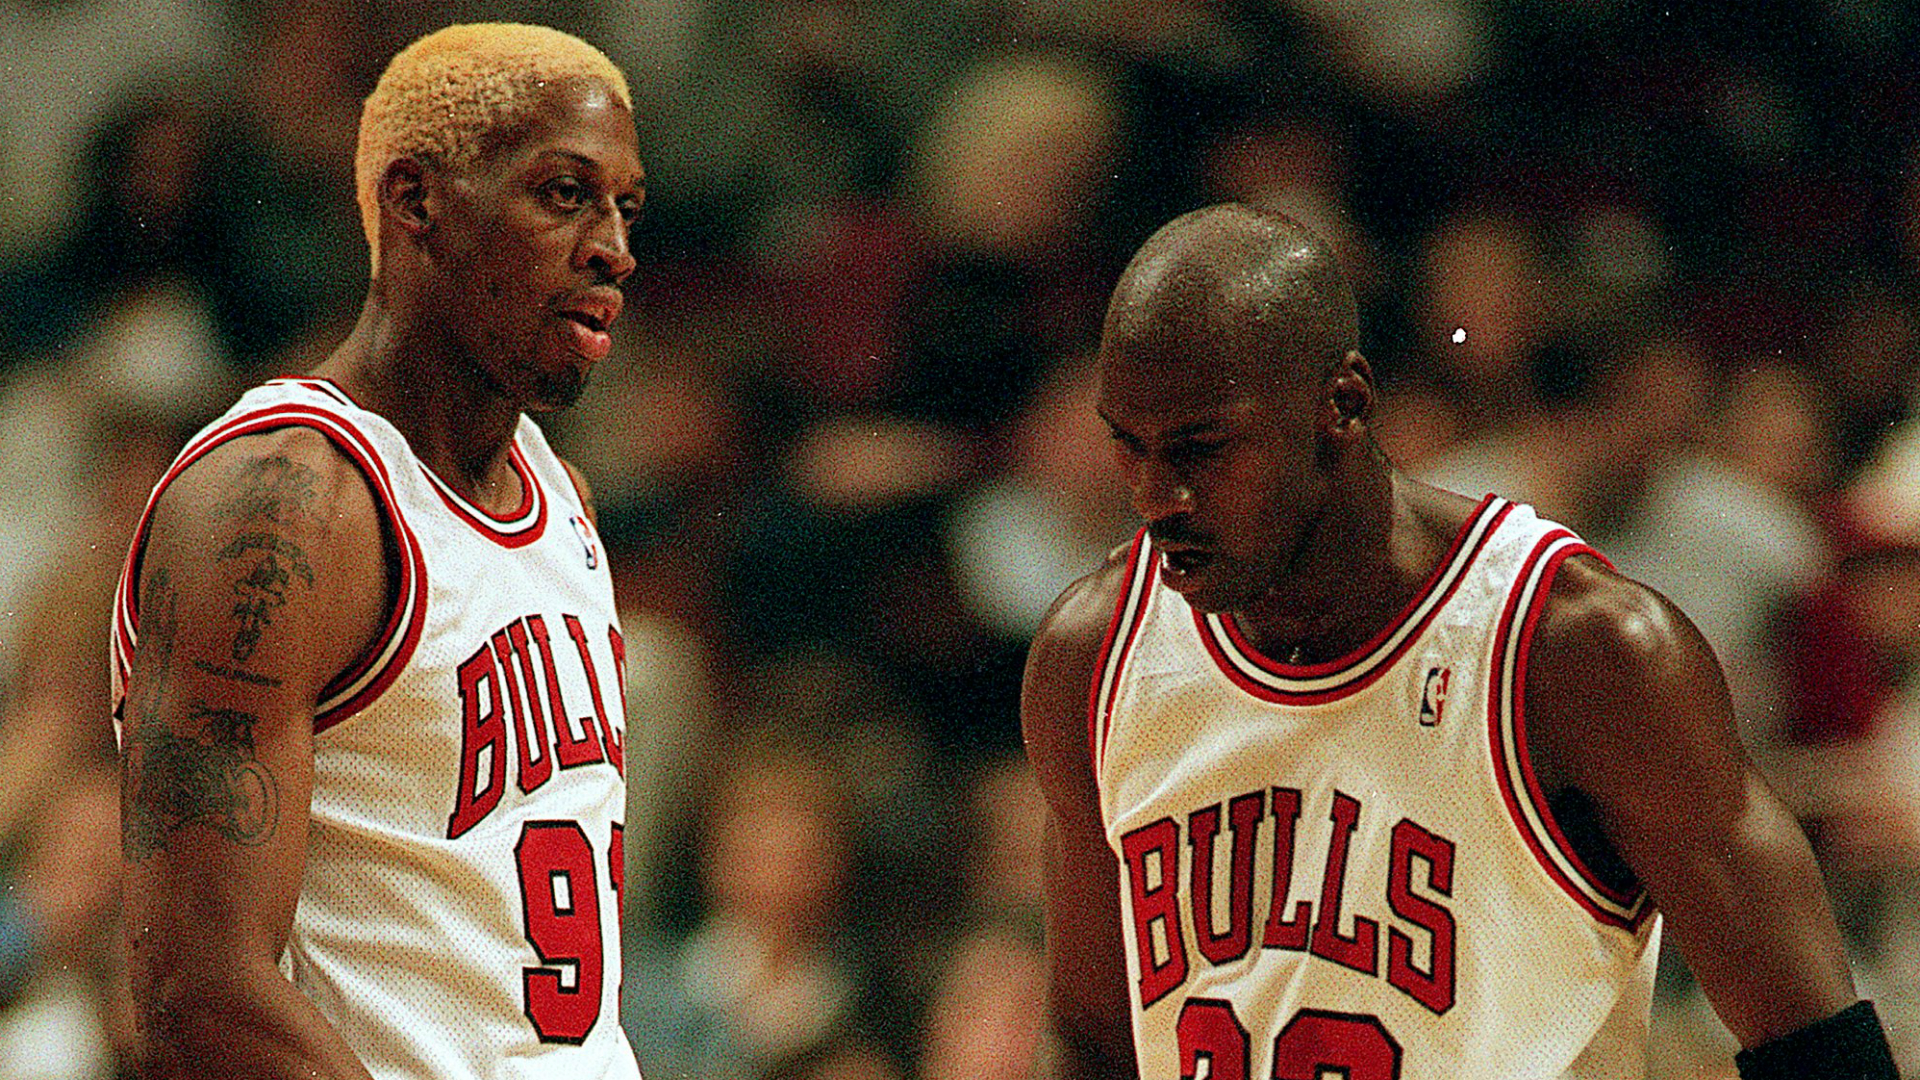 Nine NBA 2K16 classic teams that will inspire your imagination and nostalgia | Sporting News